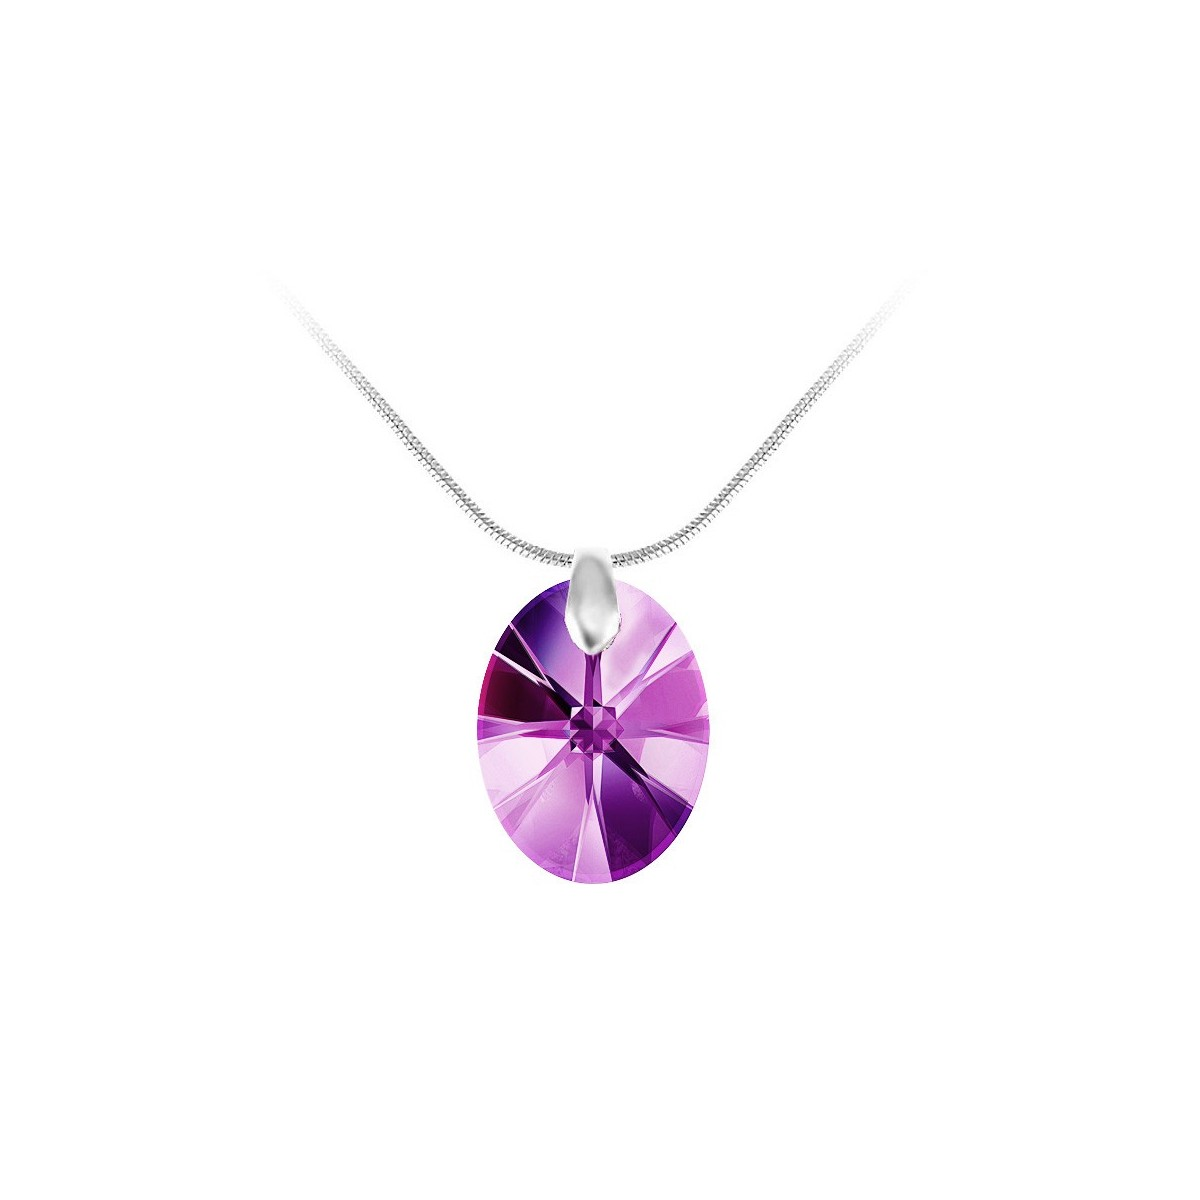 BS049-SN016-AMET Collier argenté et goutte violette So Charm made with Crystal from Swarovski